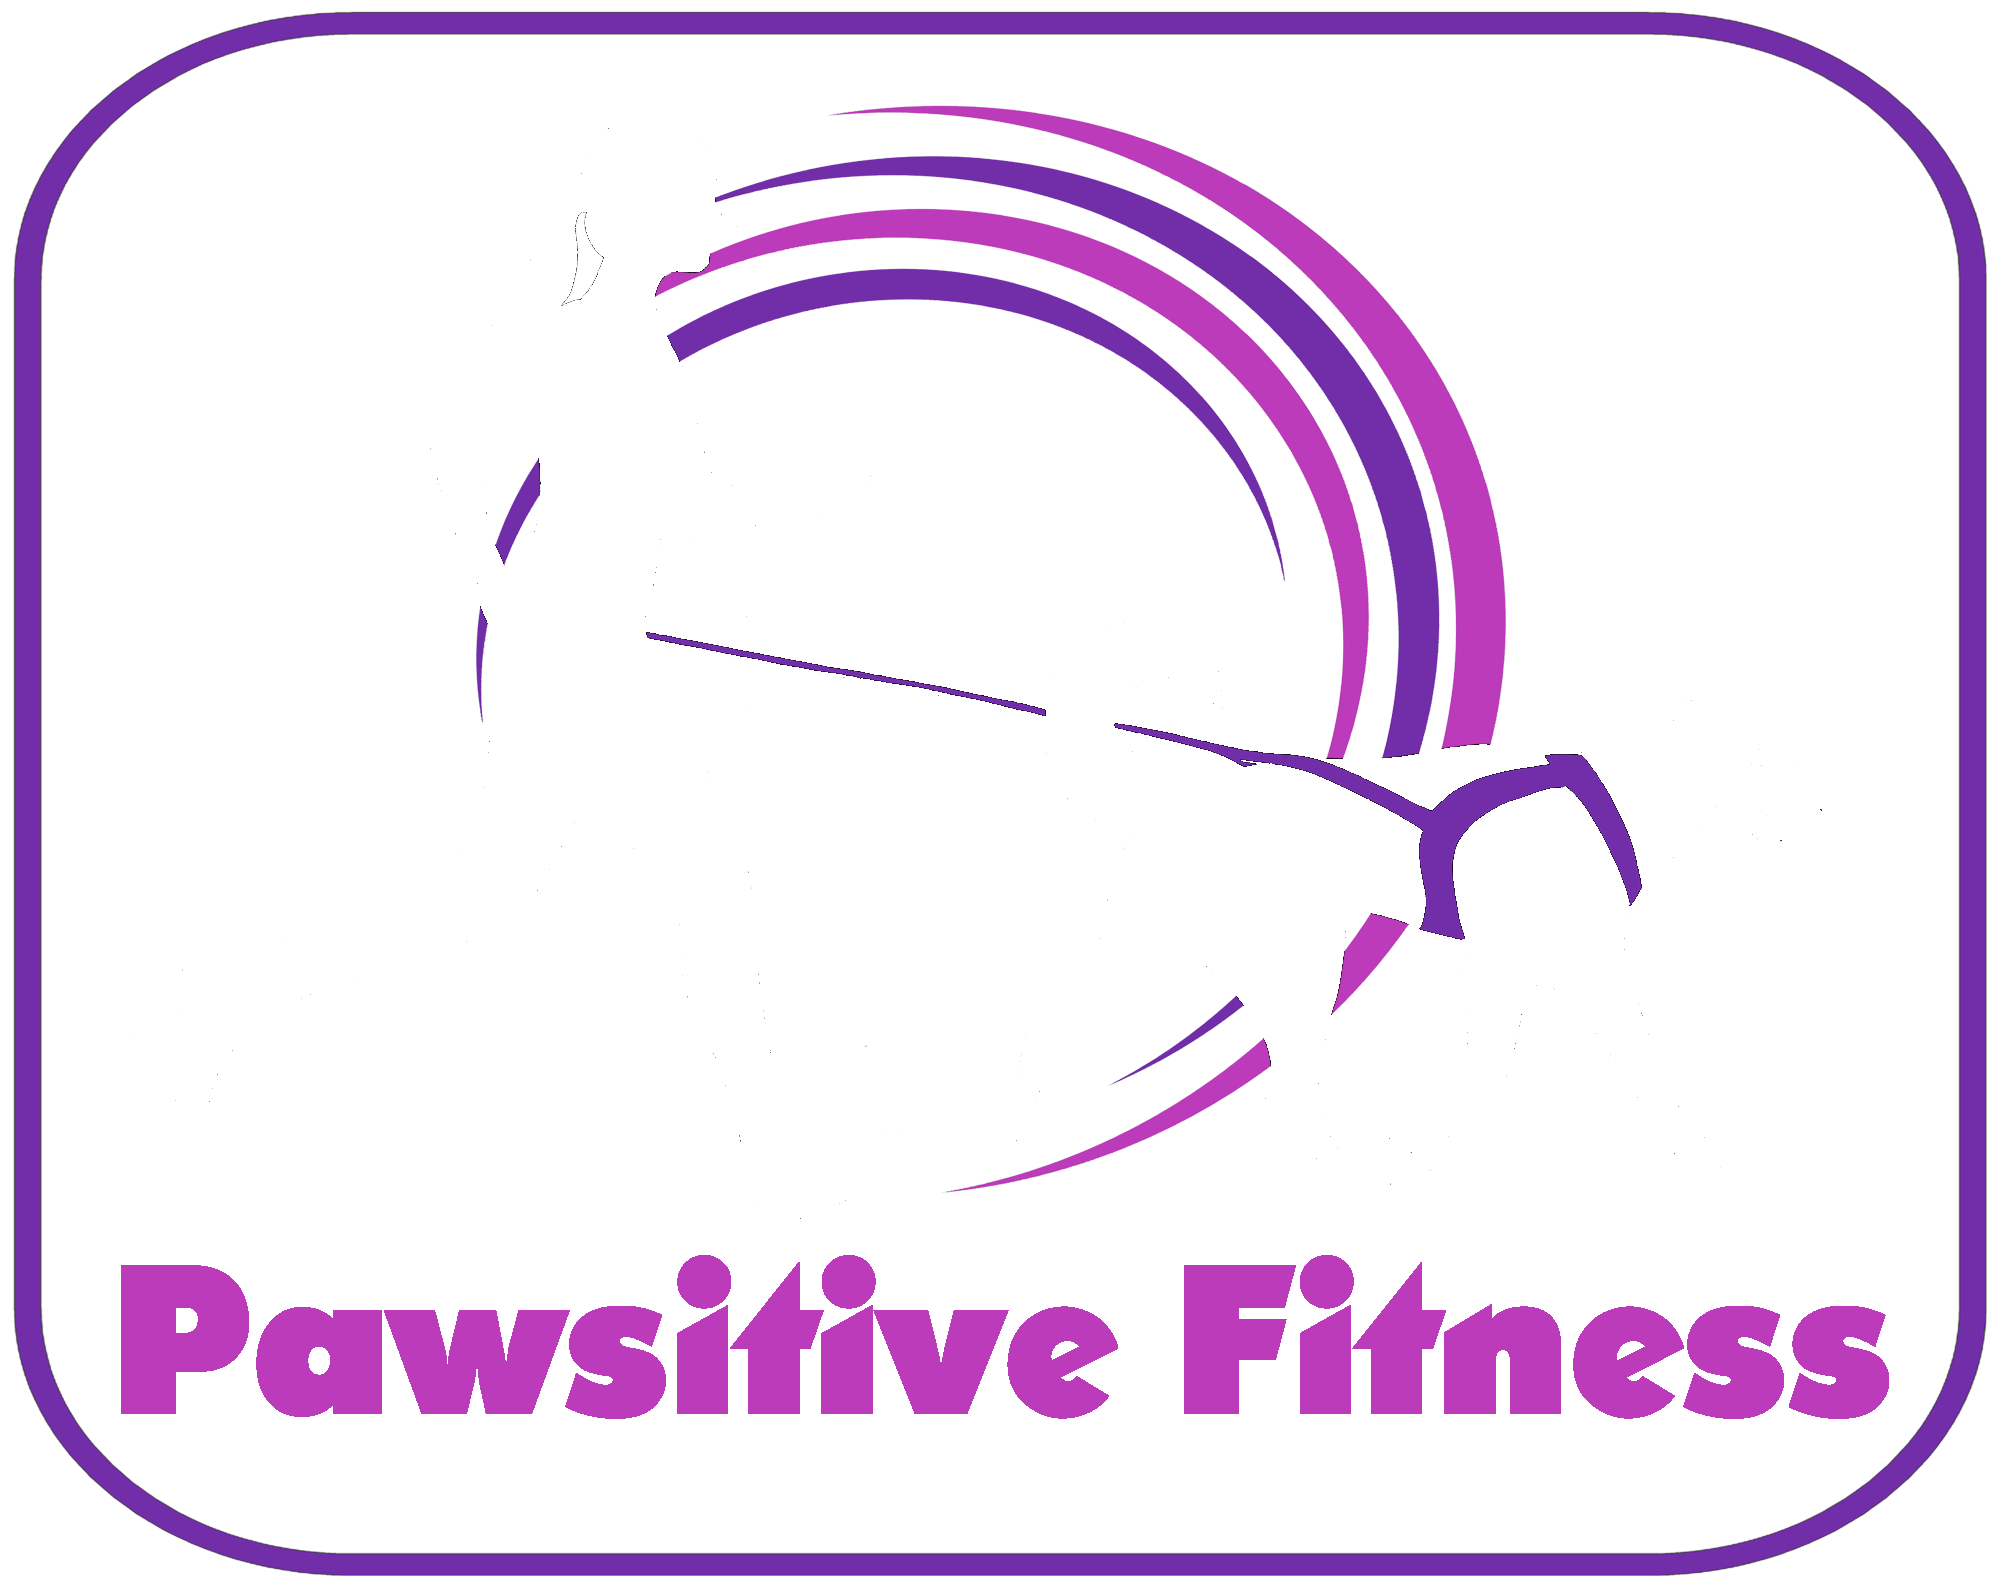 Pawsitive Fitness